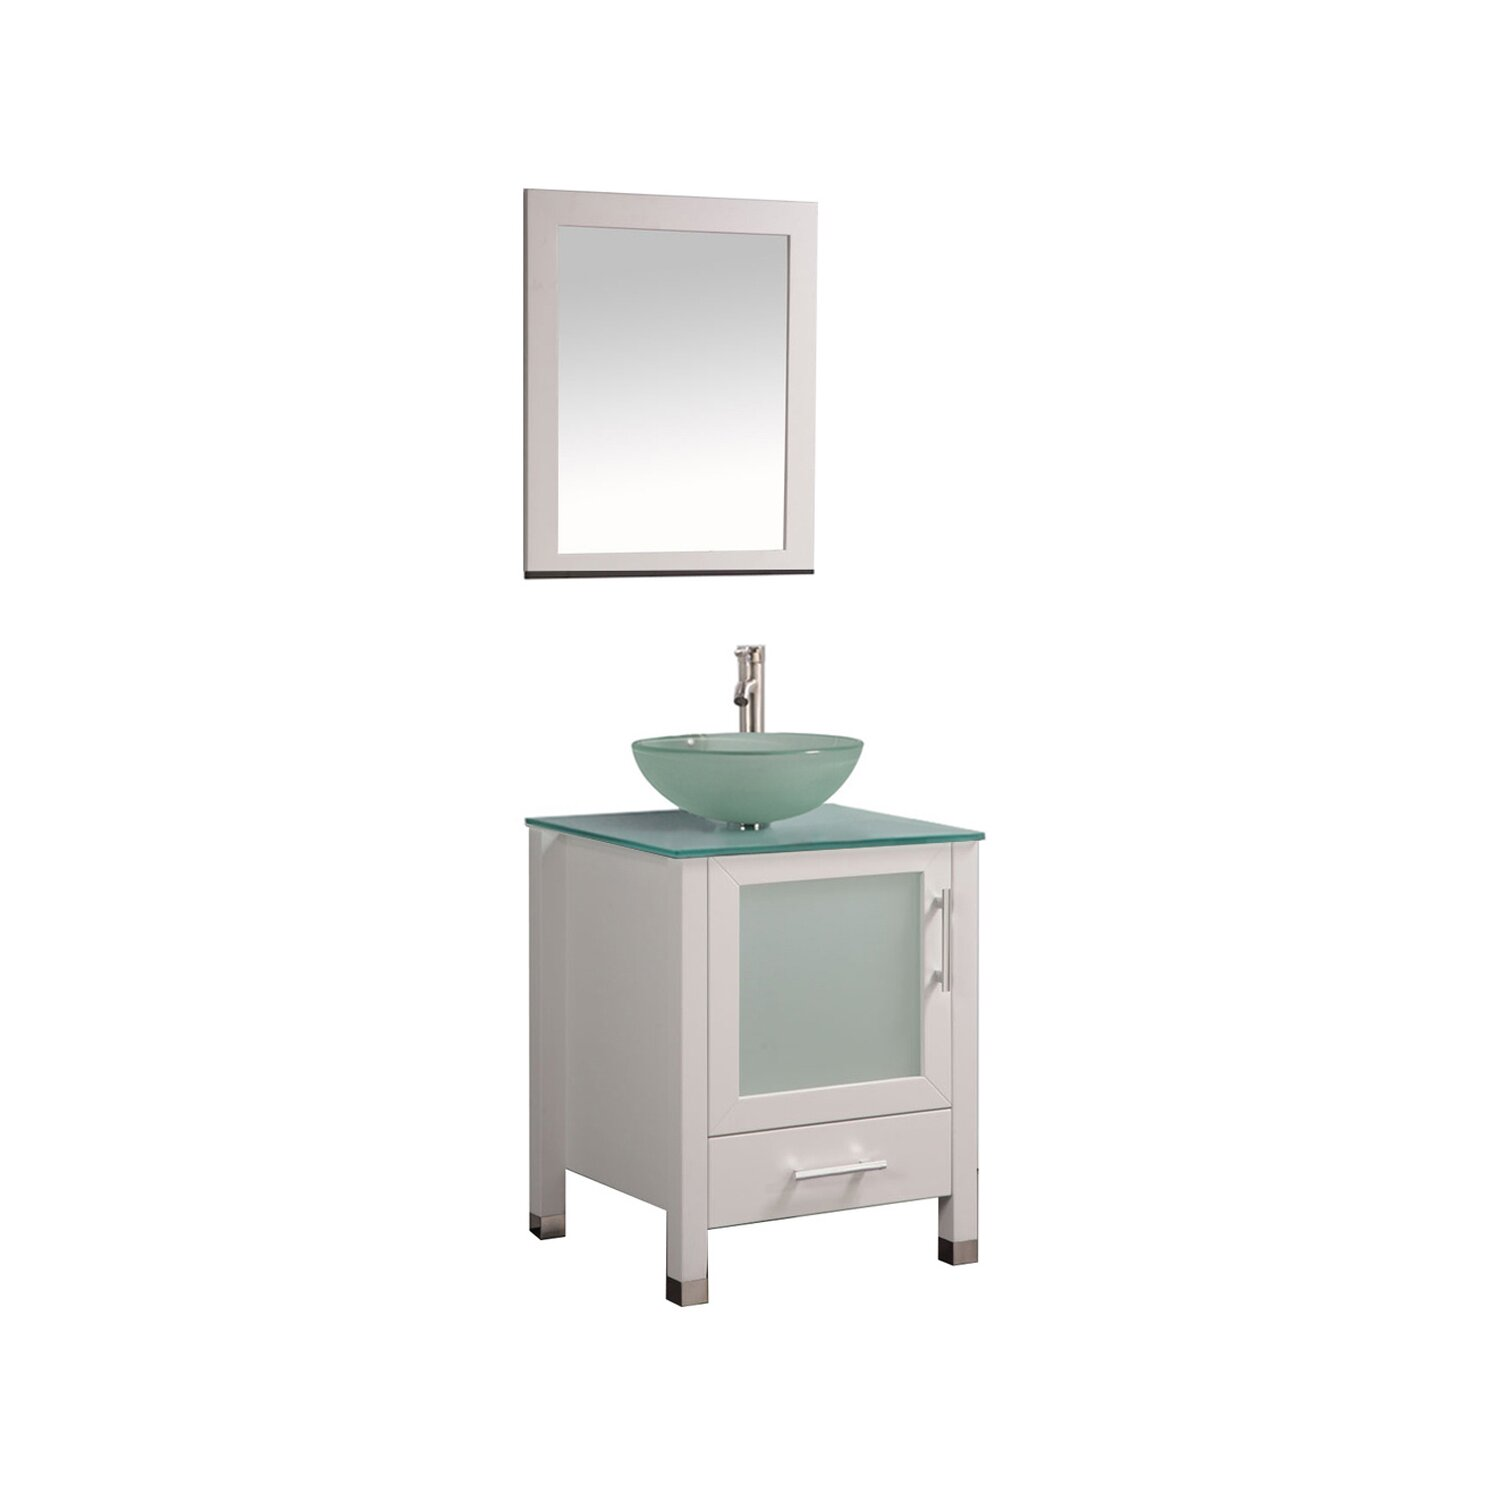 Mtdvanities Cuba 24 Single Sink Bathroom Vanity Set With Mirror Wayfair